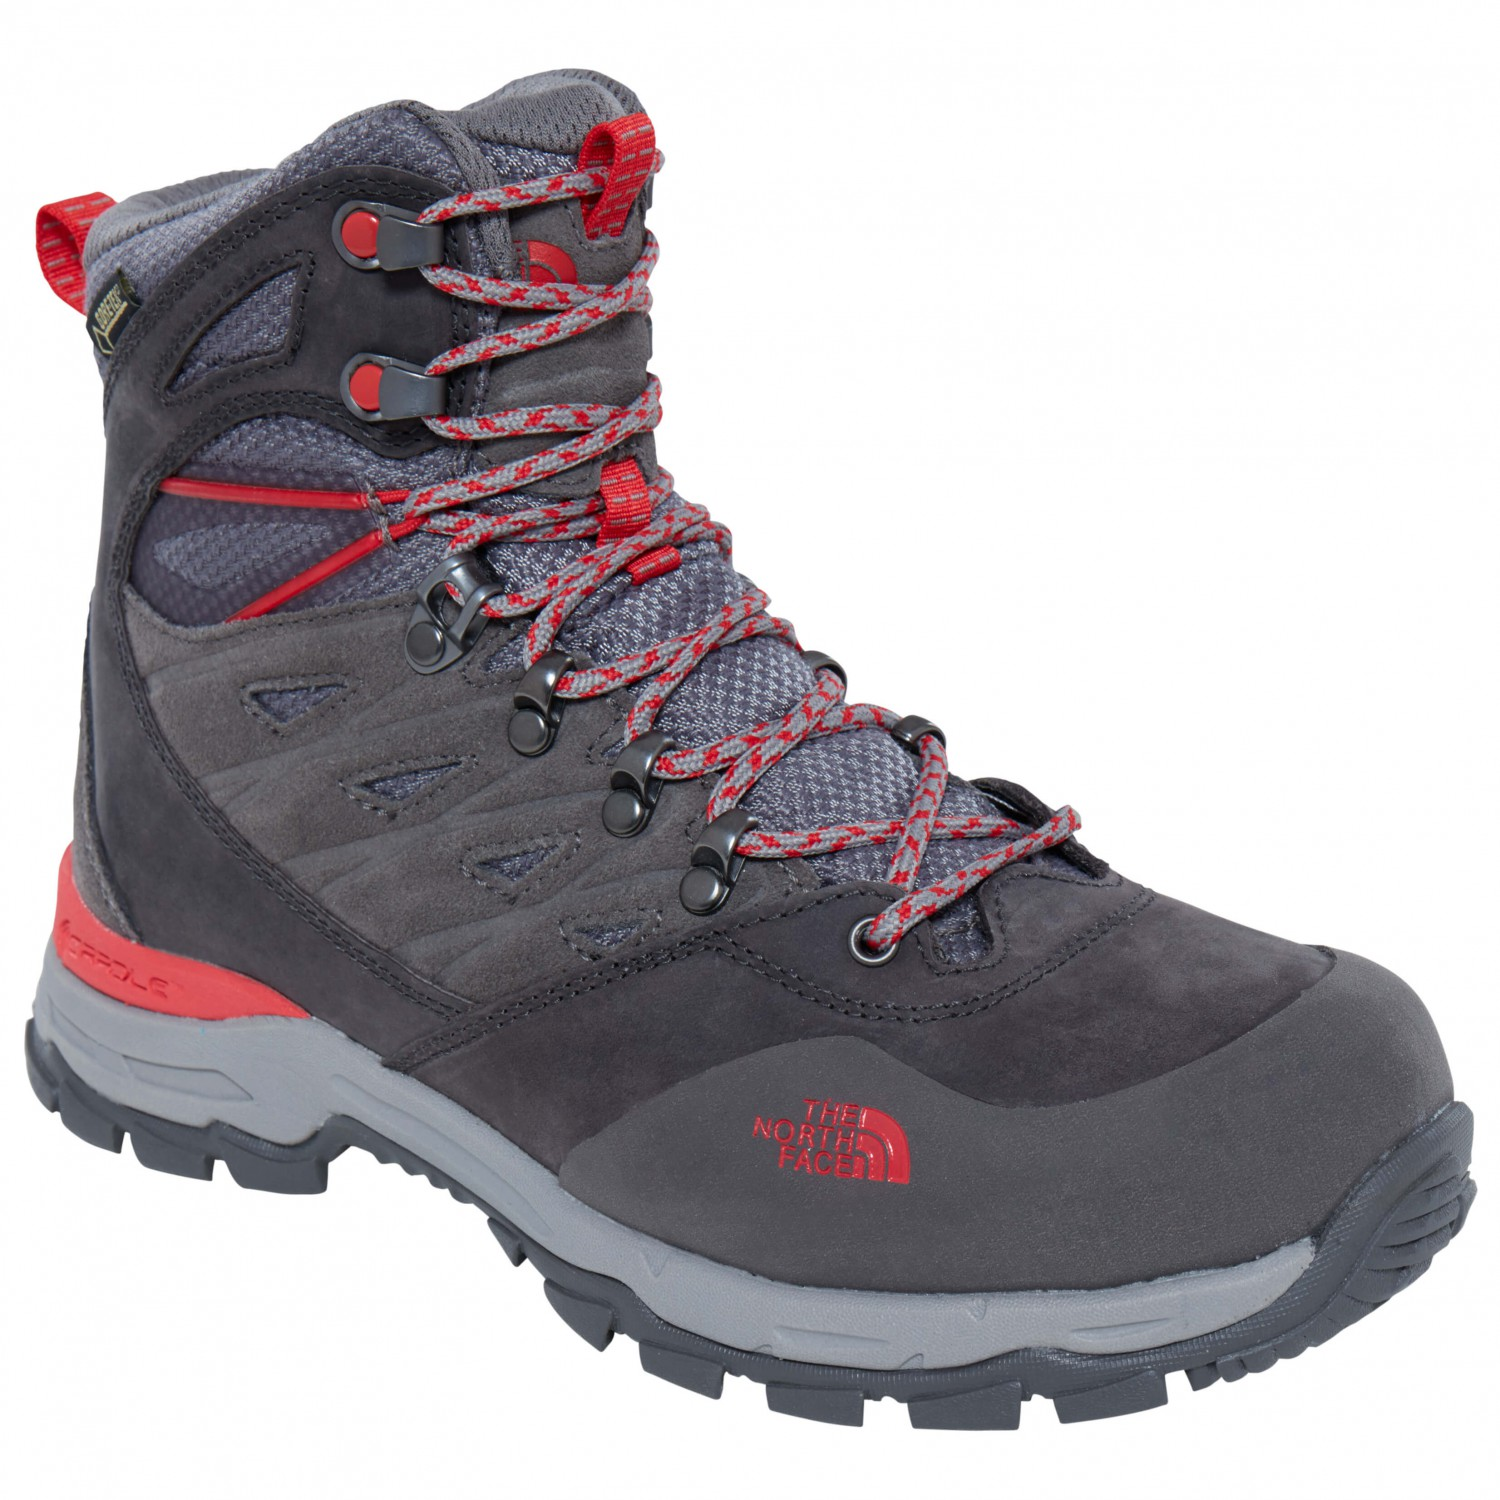 009af4846c The North Face - Women's Hedgehog Trek GTX - Walking boots - Dark Gull Grey  / Melon Red | 6,5 (US)